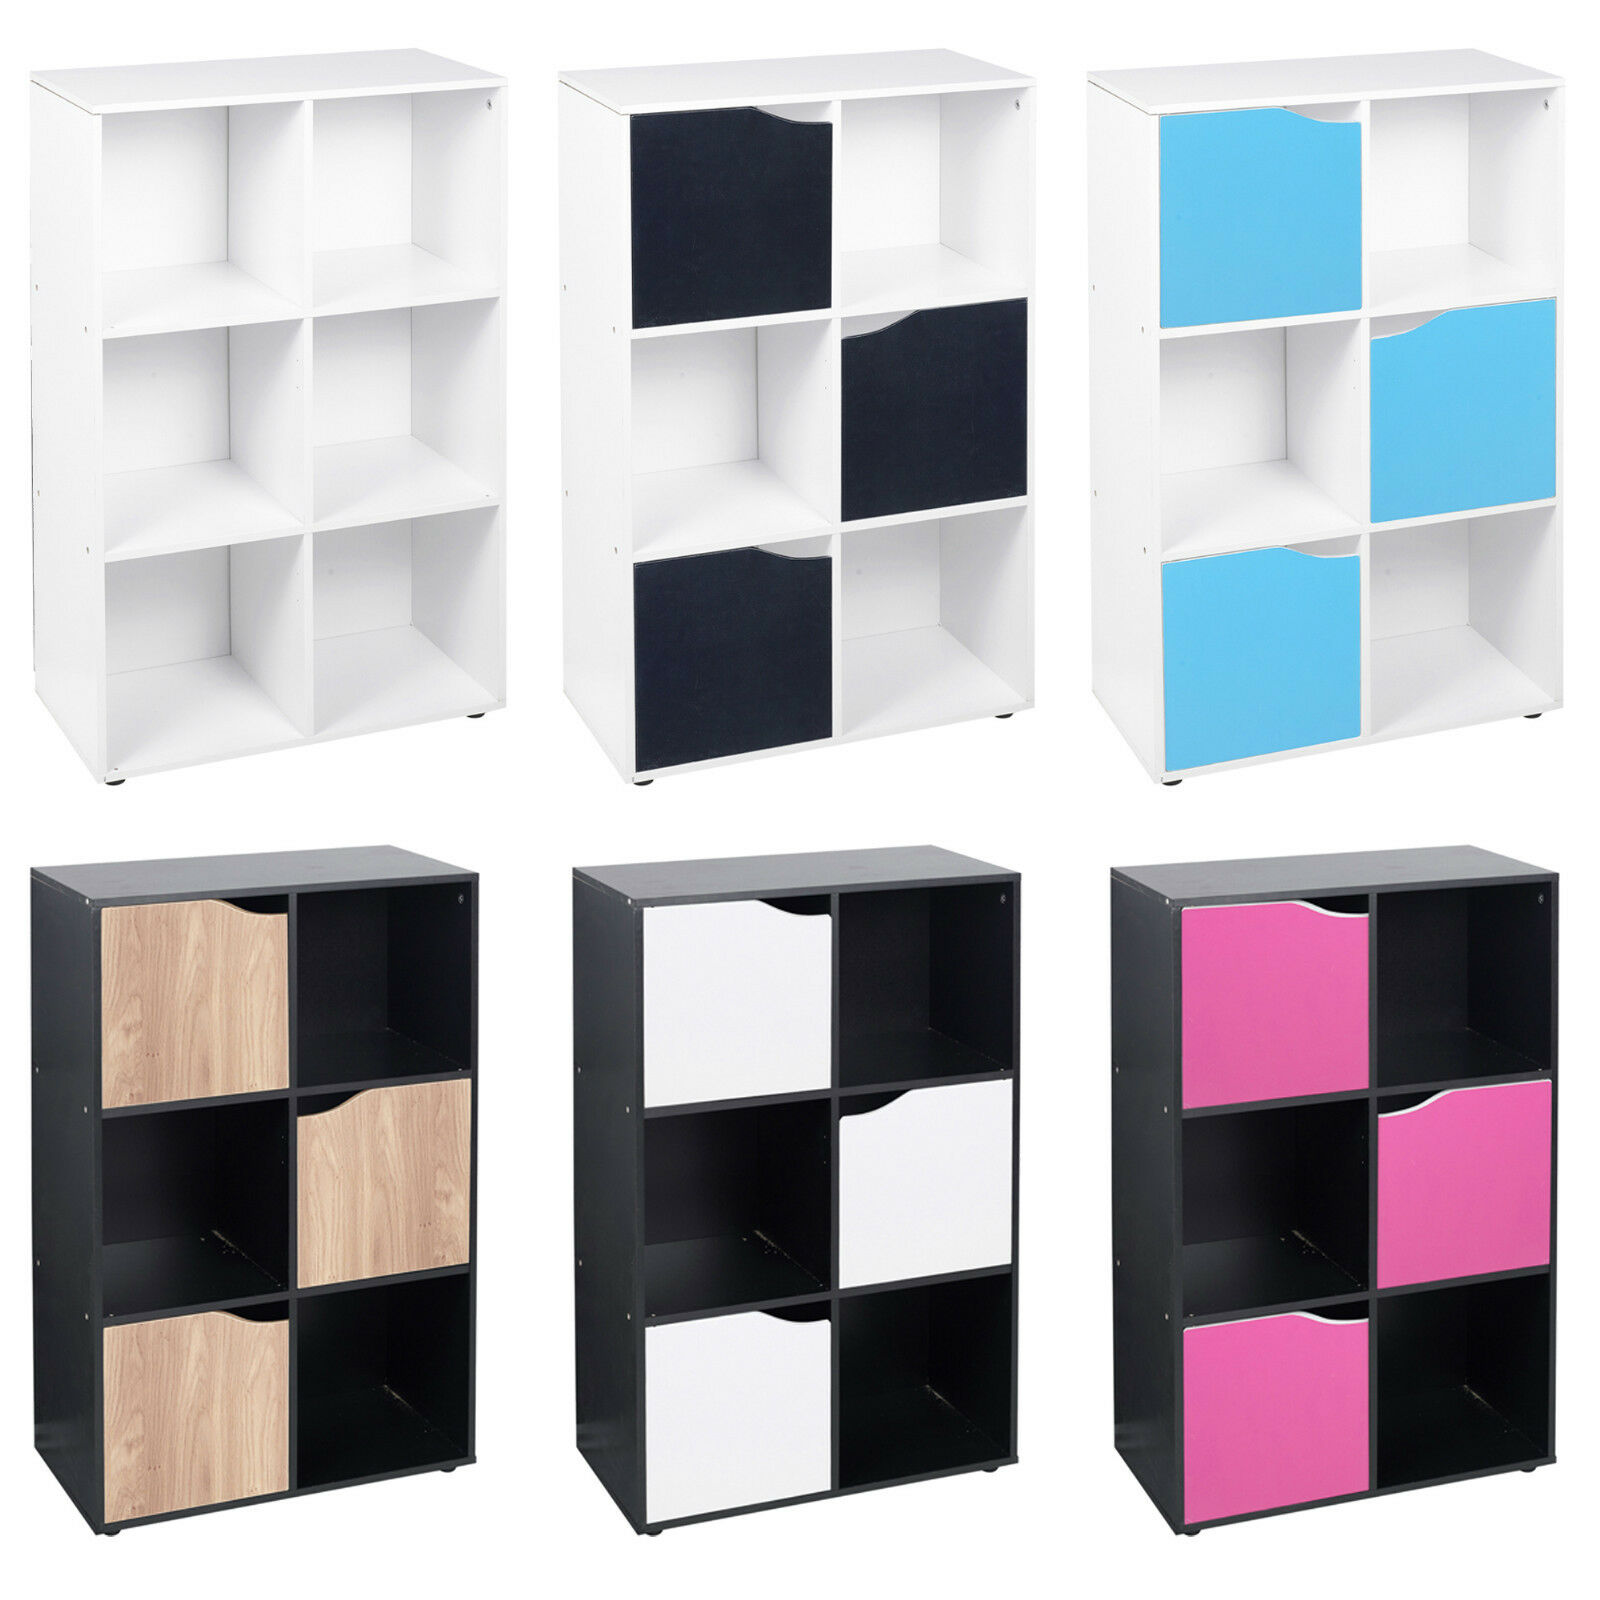 Details About 6 Cube Wooden Bookcase Shelving Display Shelves Storage Unit  Wood Shelf Door New